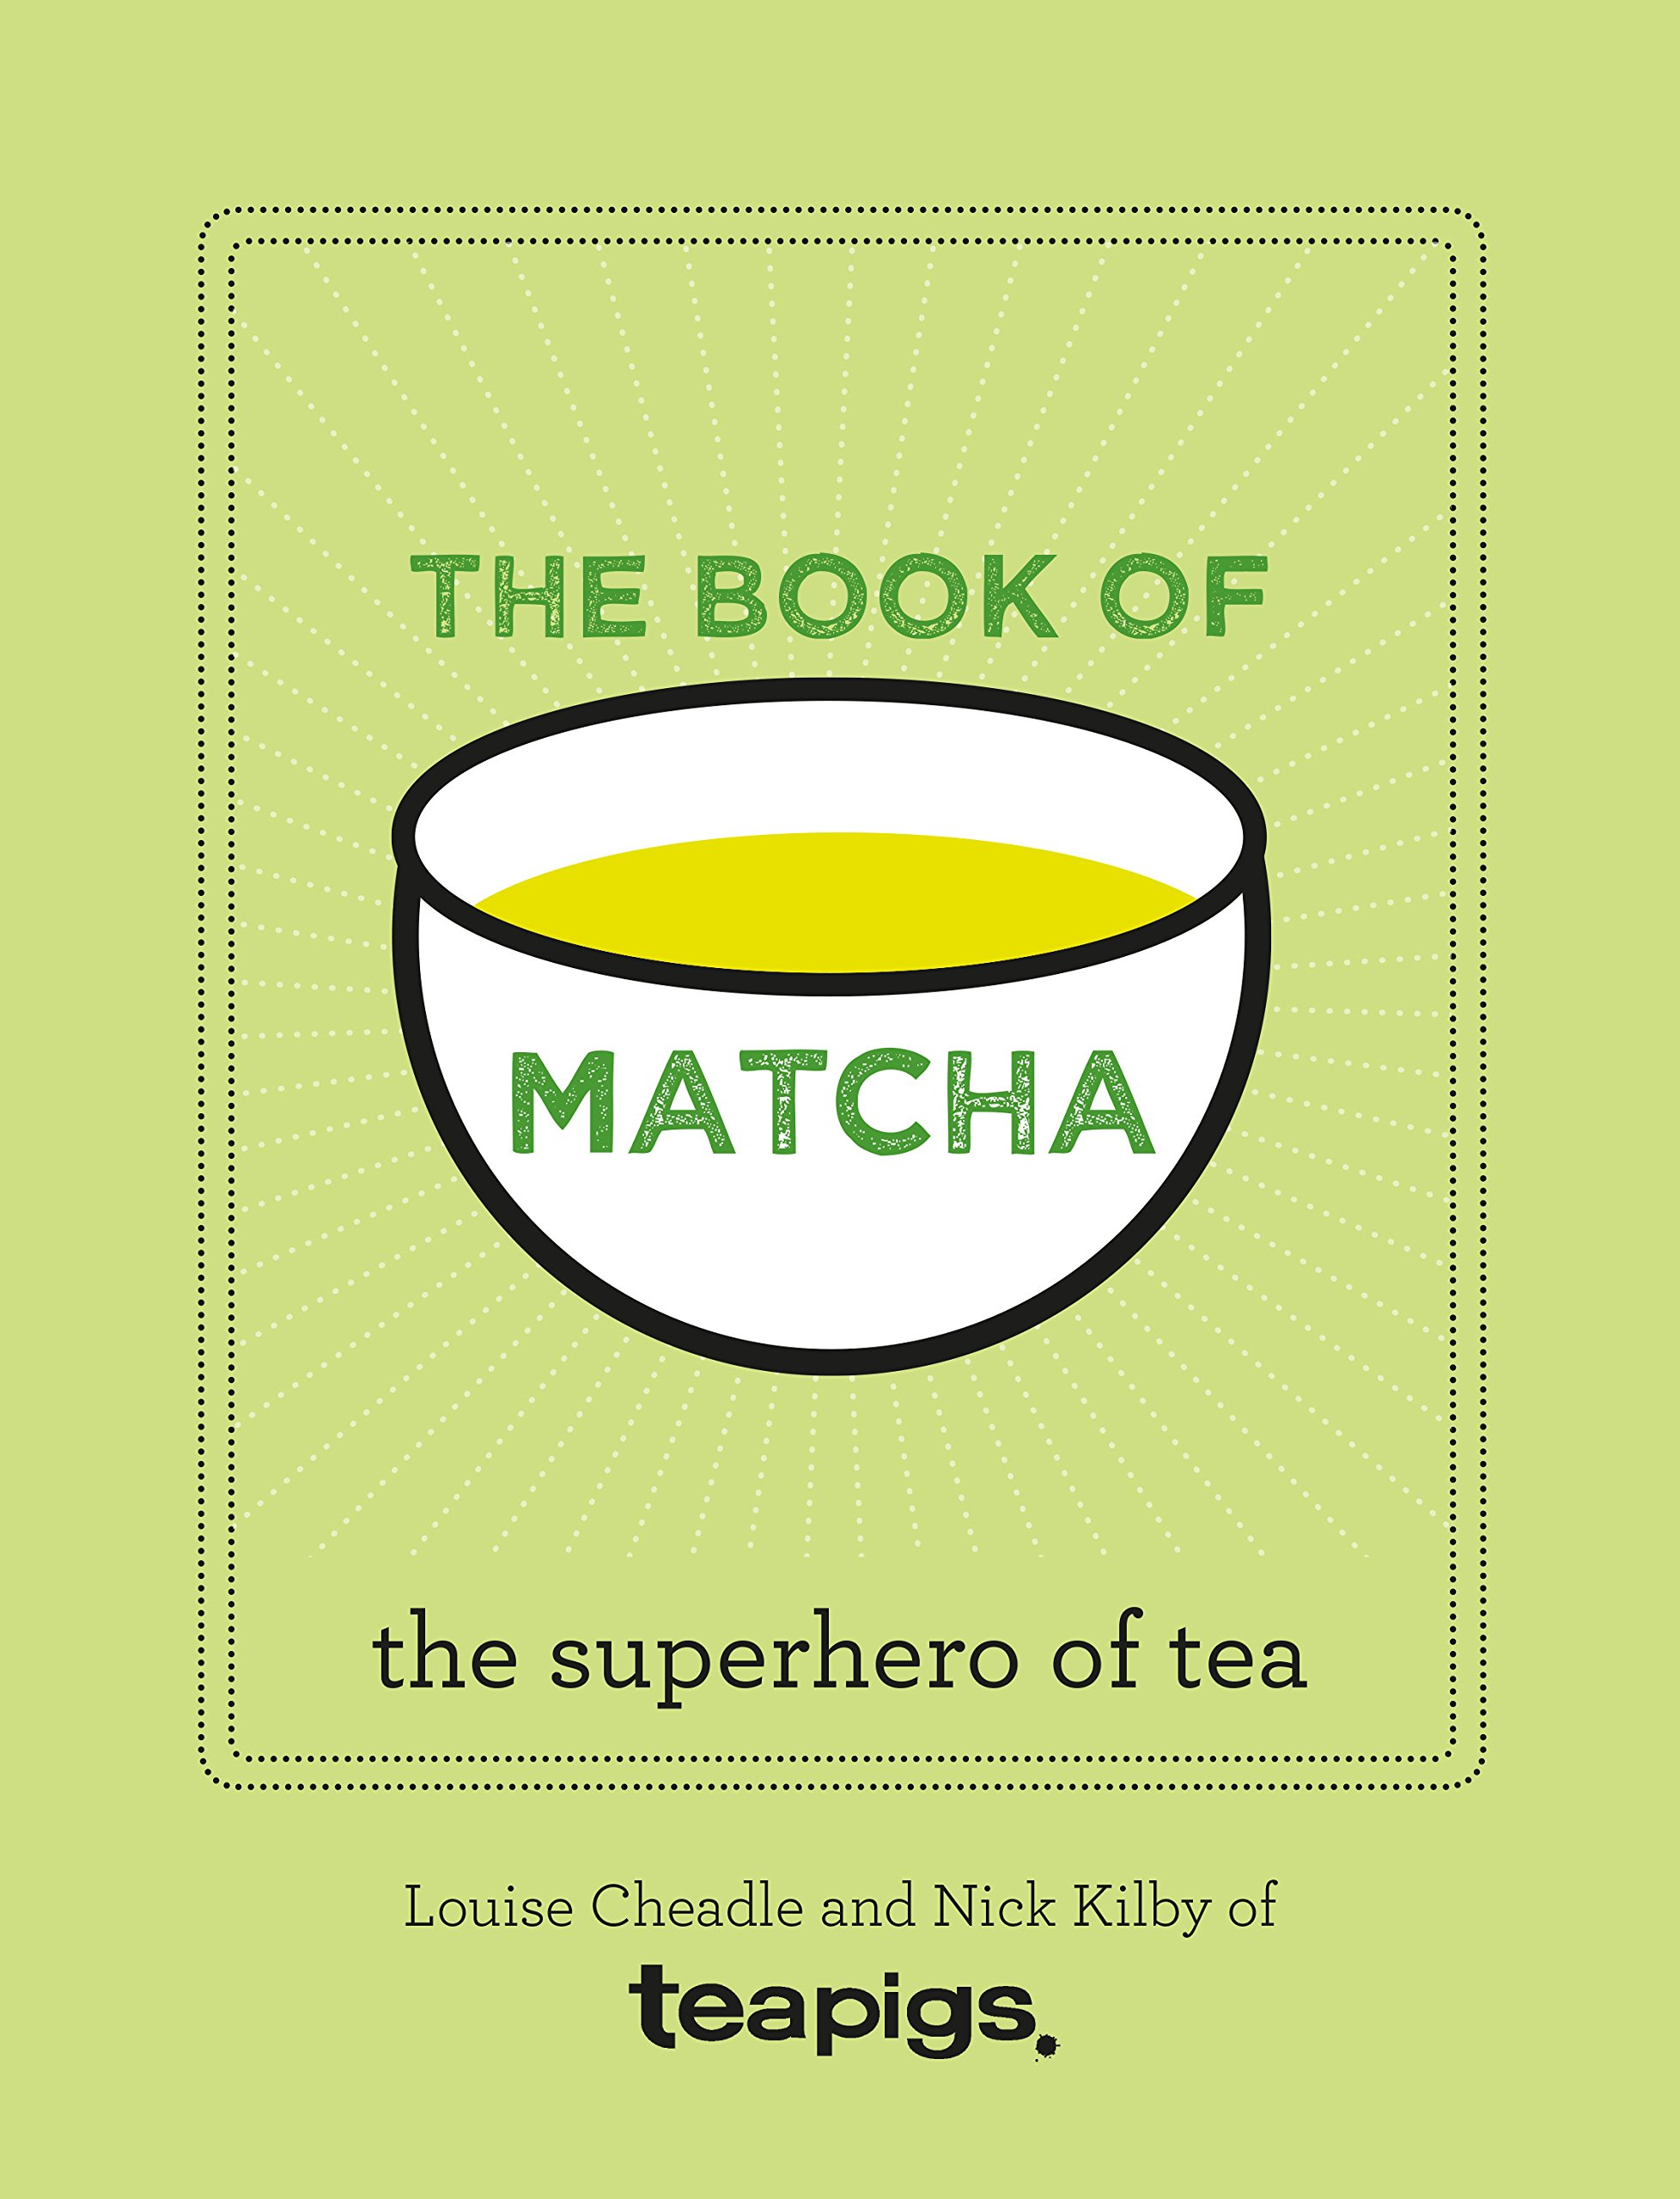 The Book of Matcha: A Superhero Tea - What It Is, How to Drink It, Recipes and Lots More pdf